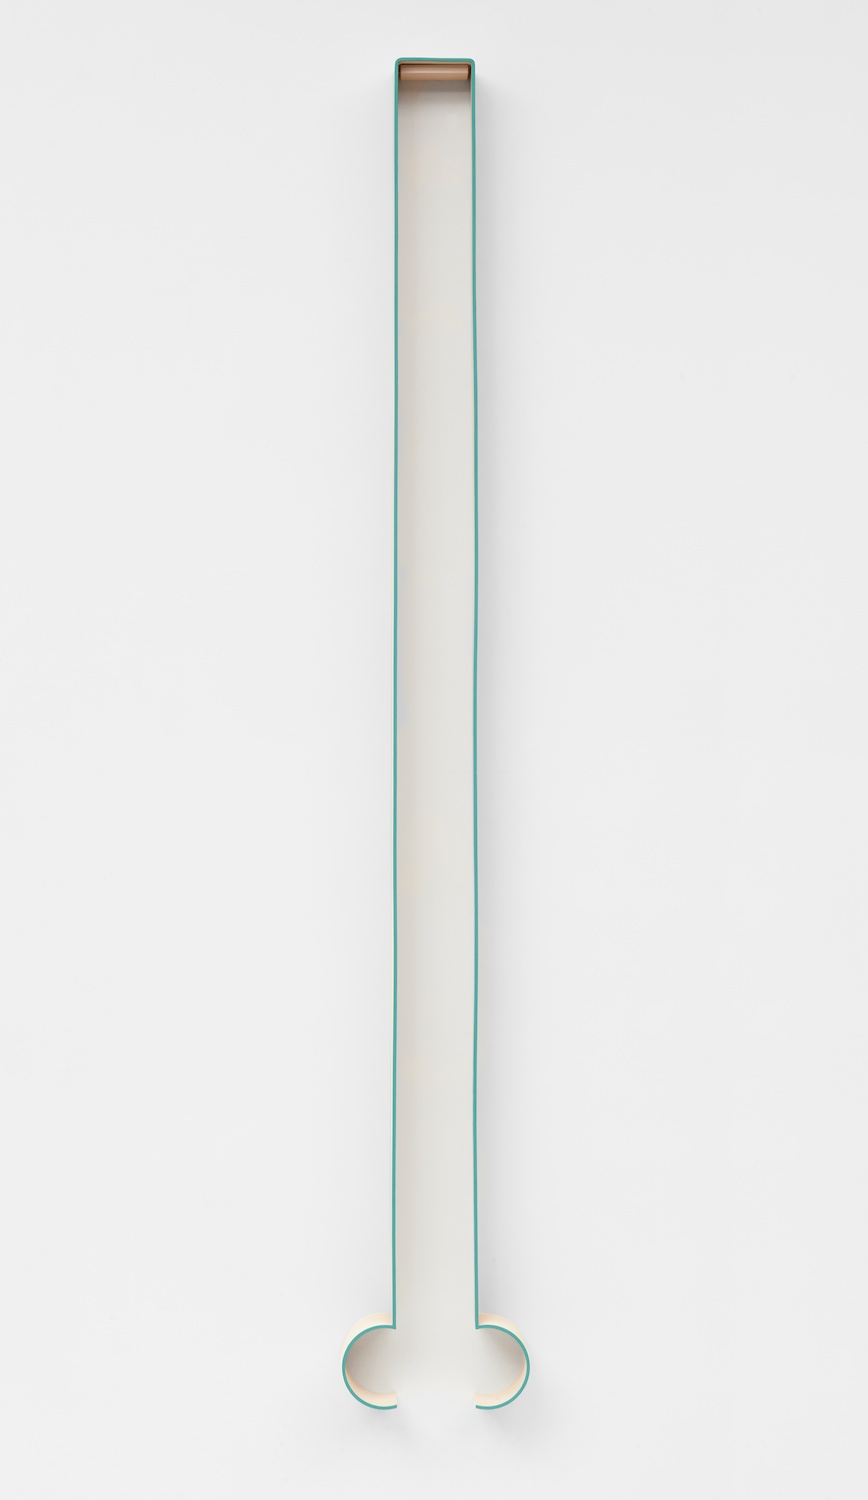 Lisa Williamson  Bump, Hairpin  2013 Acrylic on powder-coated steel 80h x 14w x 4d in LW117